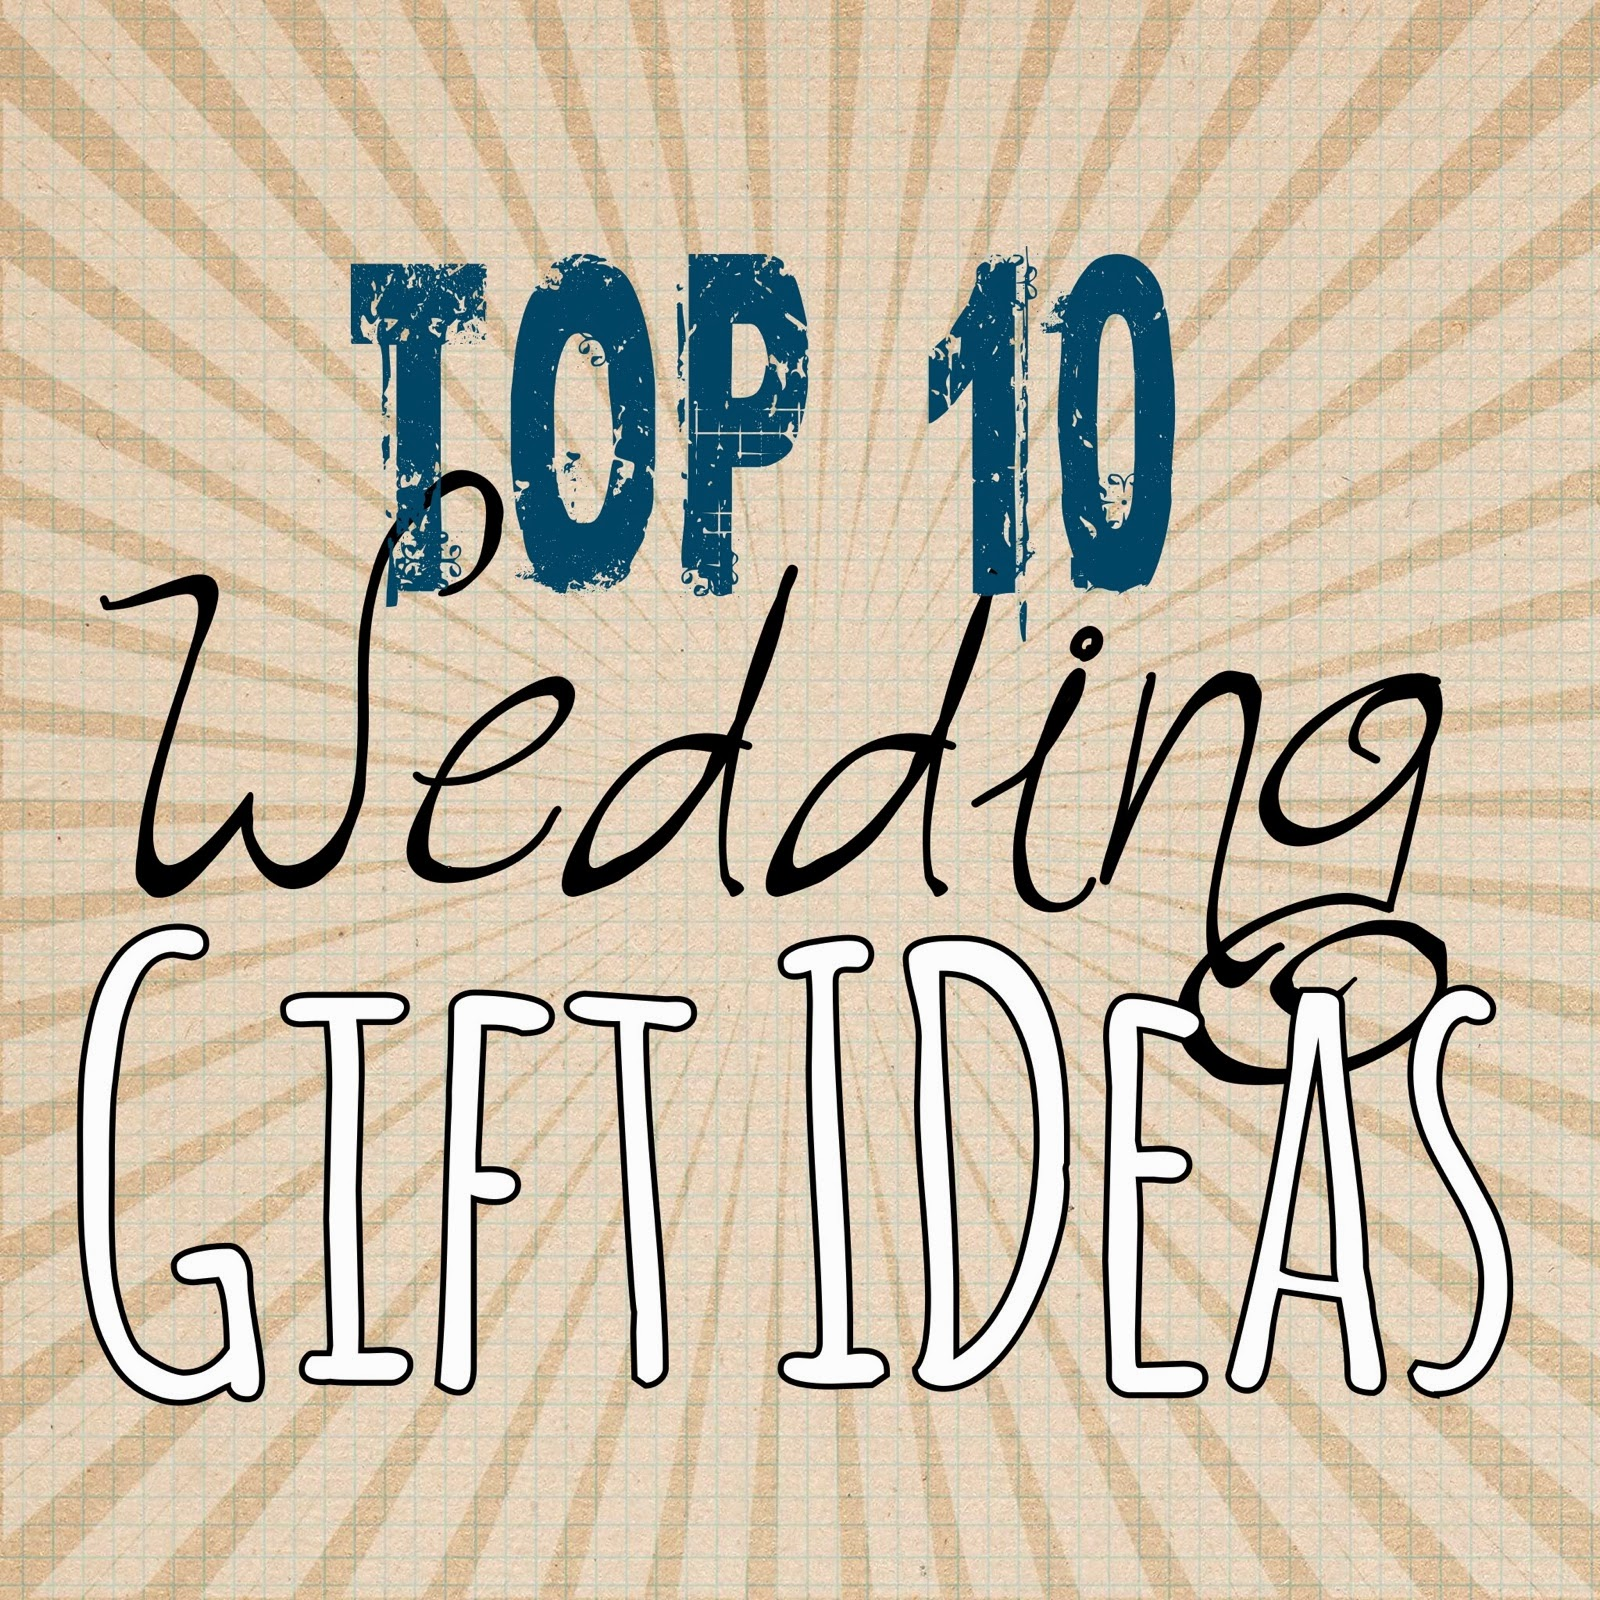 Wedding Gifts For Best Friend Female : Top 10 Wedding Gift Ideas - Lou Lou Girls